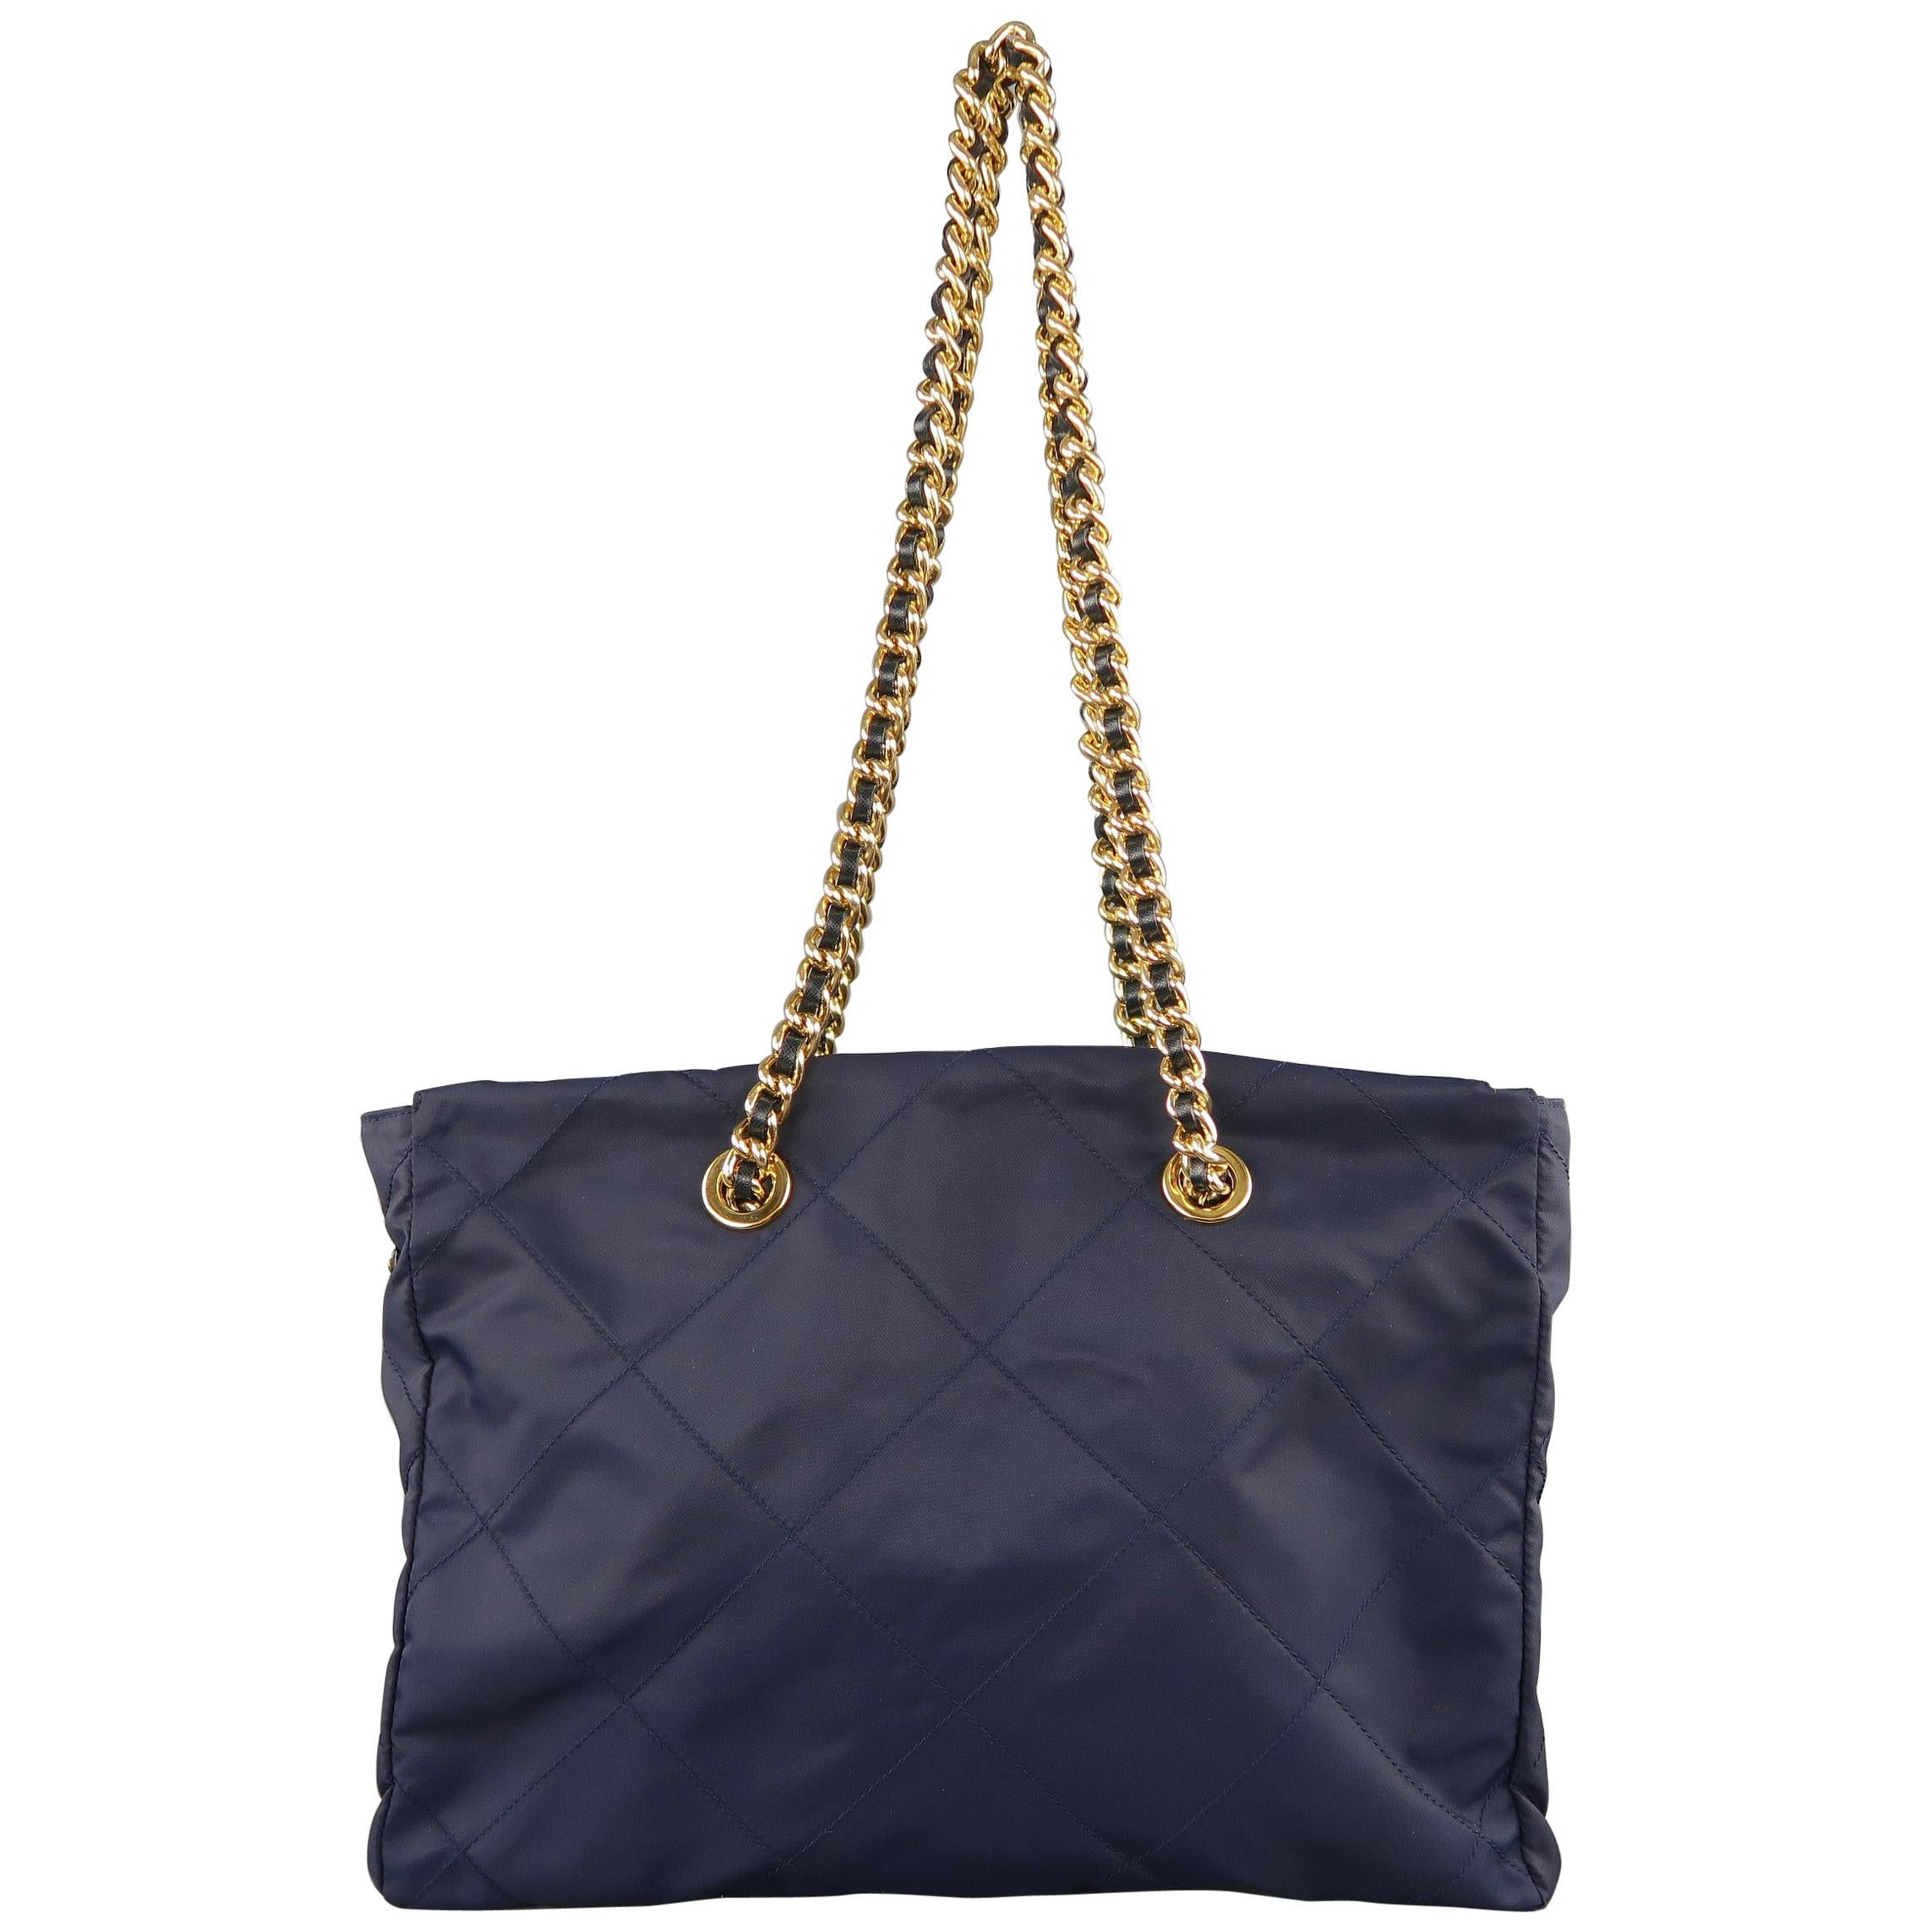 f876ba329845 Prada Vintage Navy Quilted Nylon Gold Chain Straps Shoulder Bag at 1stdibs